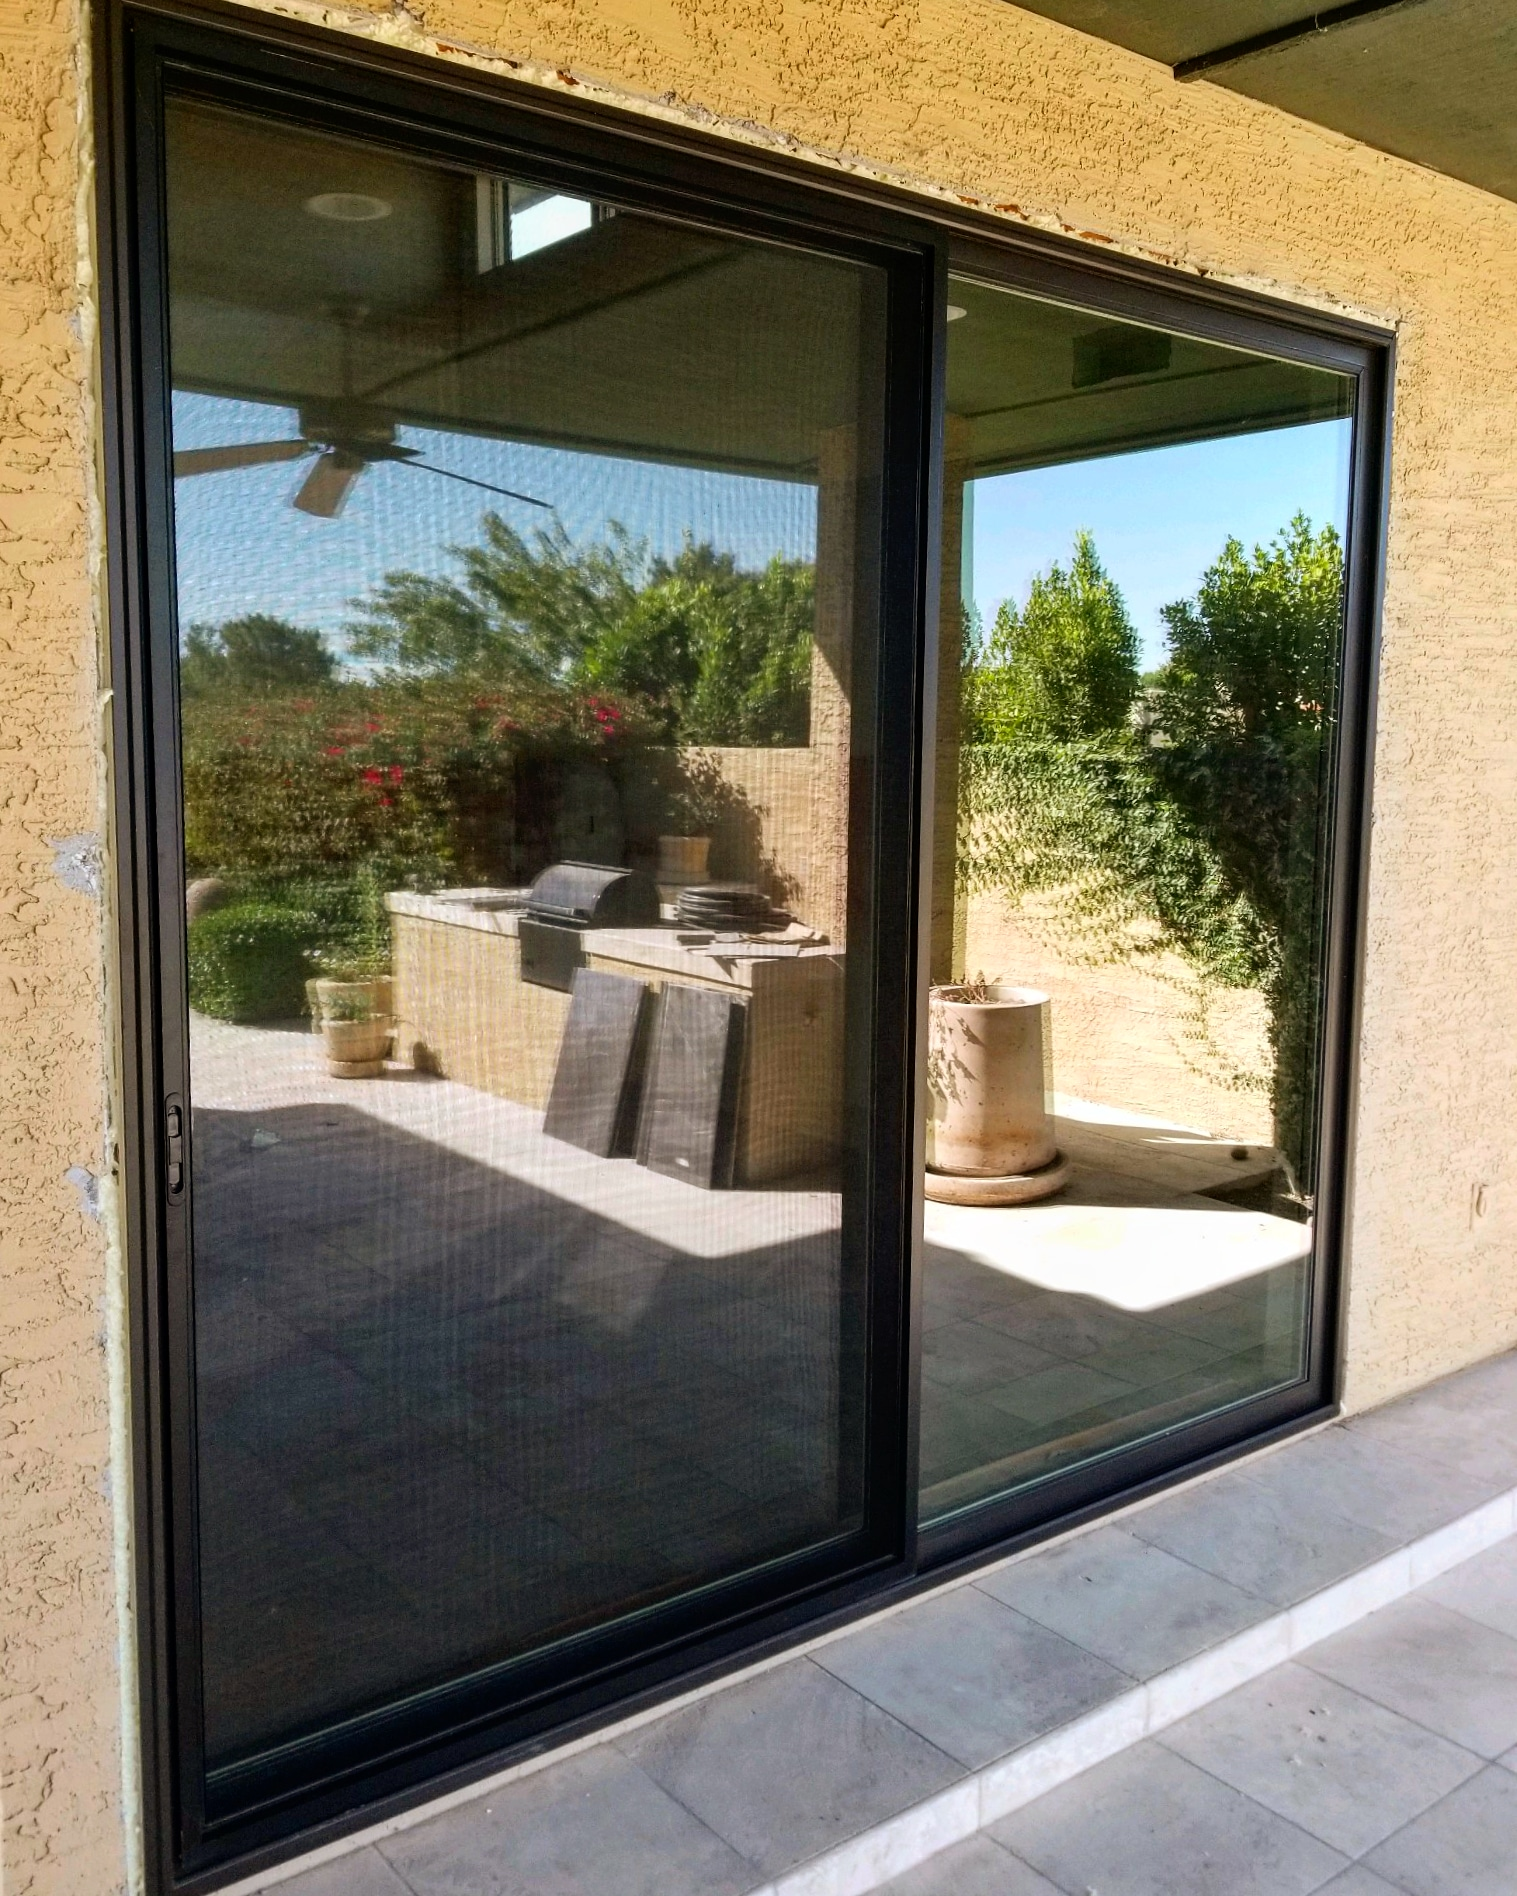 Arizona Window and Door in Scottsdale and Tucson showing black back door slider